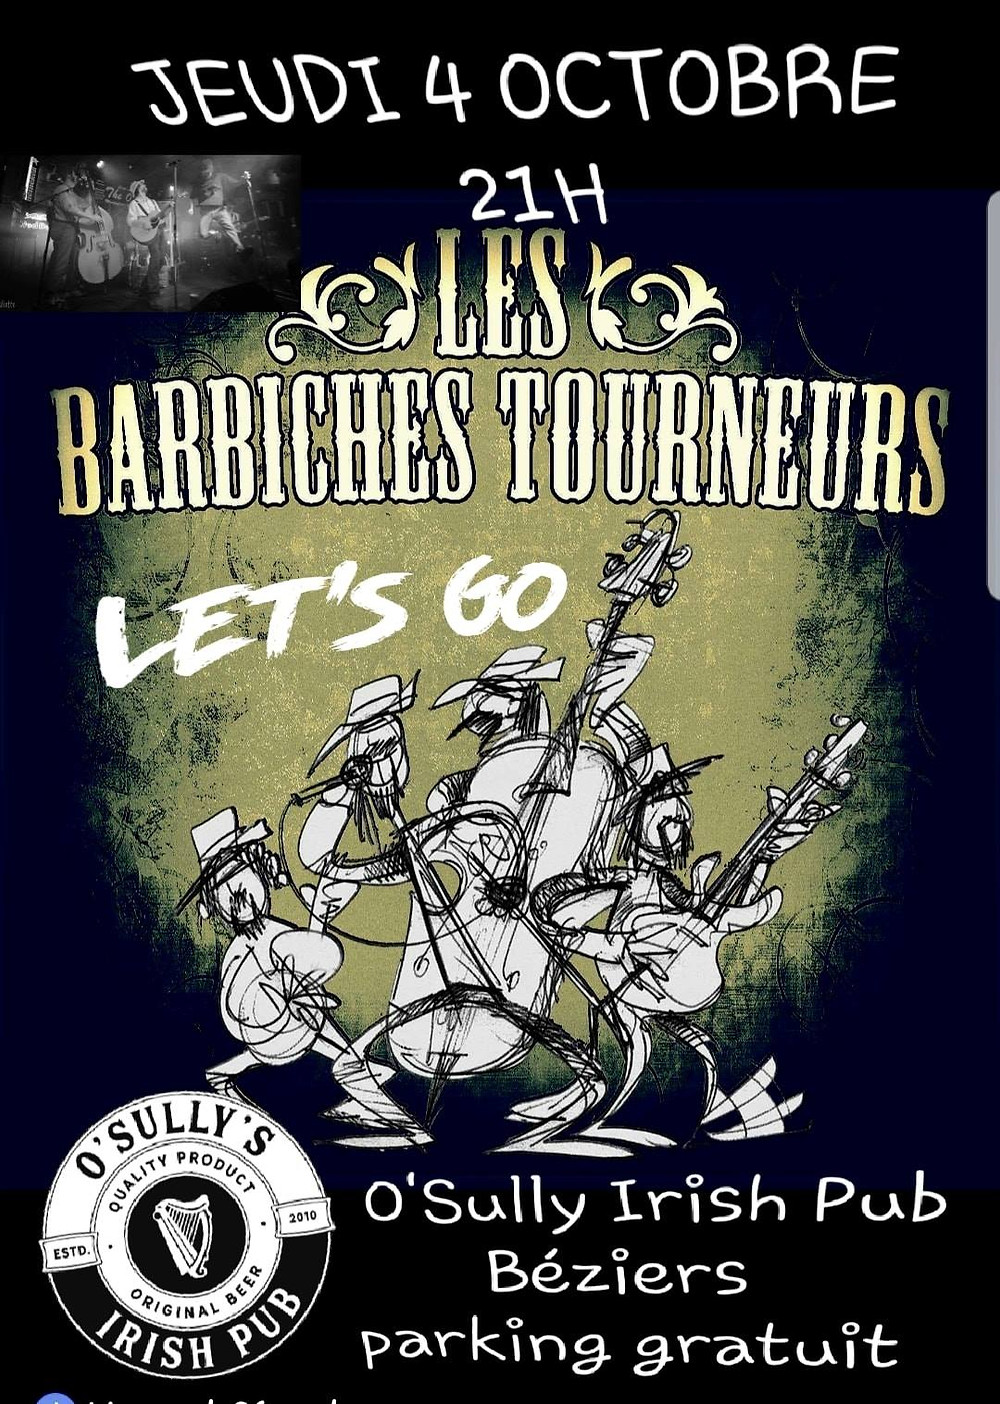 Les Barbiches Tourneurs O'Sully Irish Pub le 4 Octobre